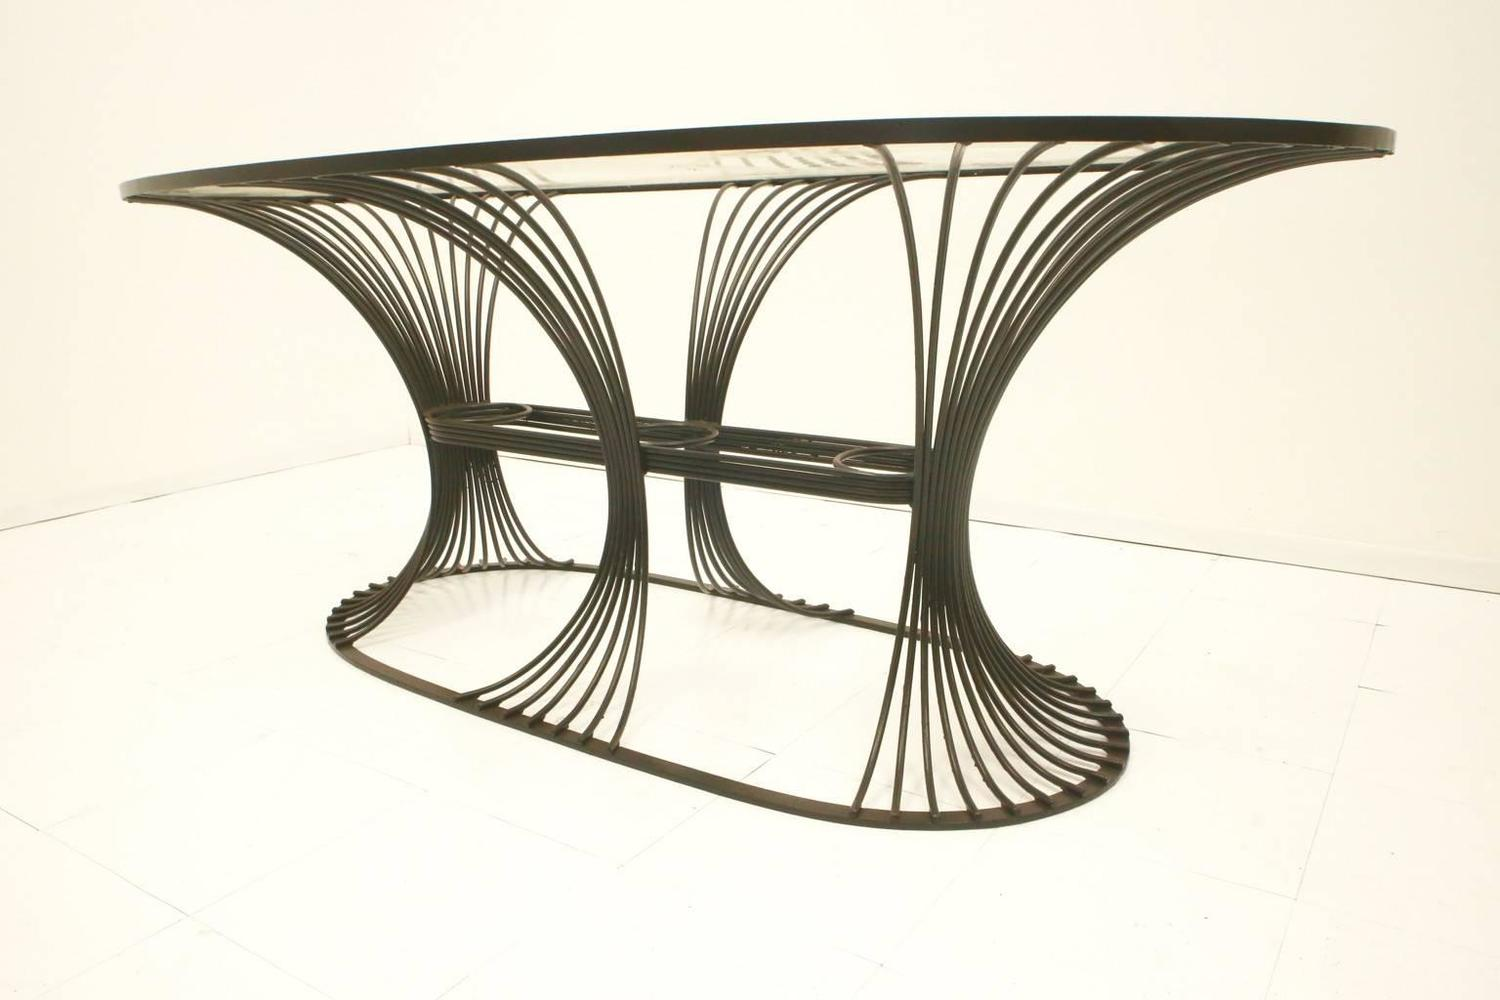 metal dining table and chairs metal dining room chairs dining modernist metal dining table chairs at 1stdibs the